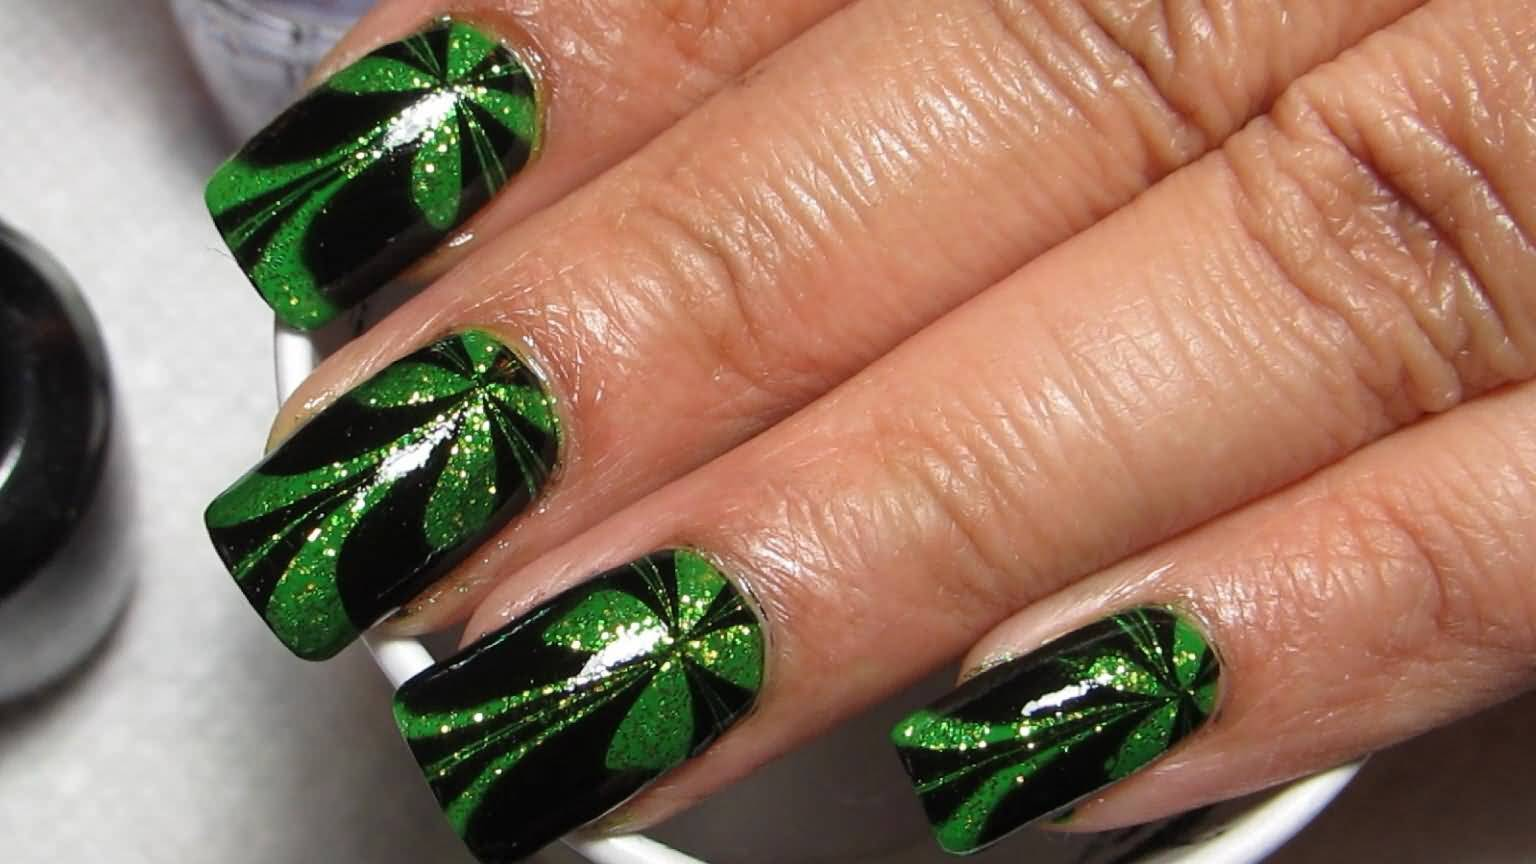 Nail Art Ideas shamrock nail art tutorial : Sparkly Green And Black St. Patrick's Day Water Marble Nail Art ...